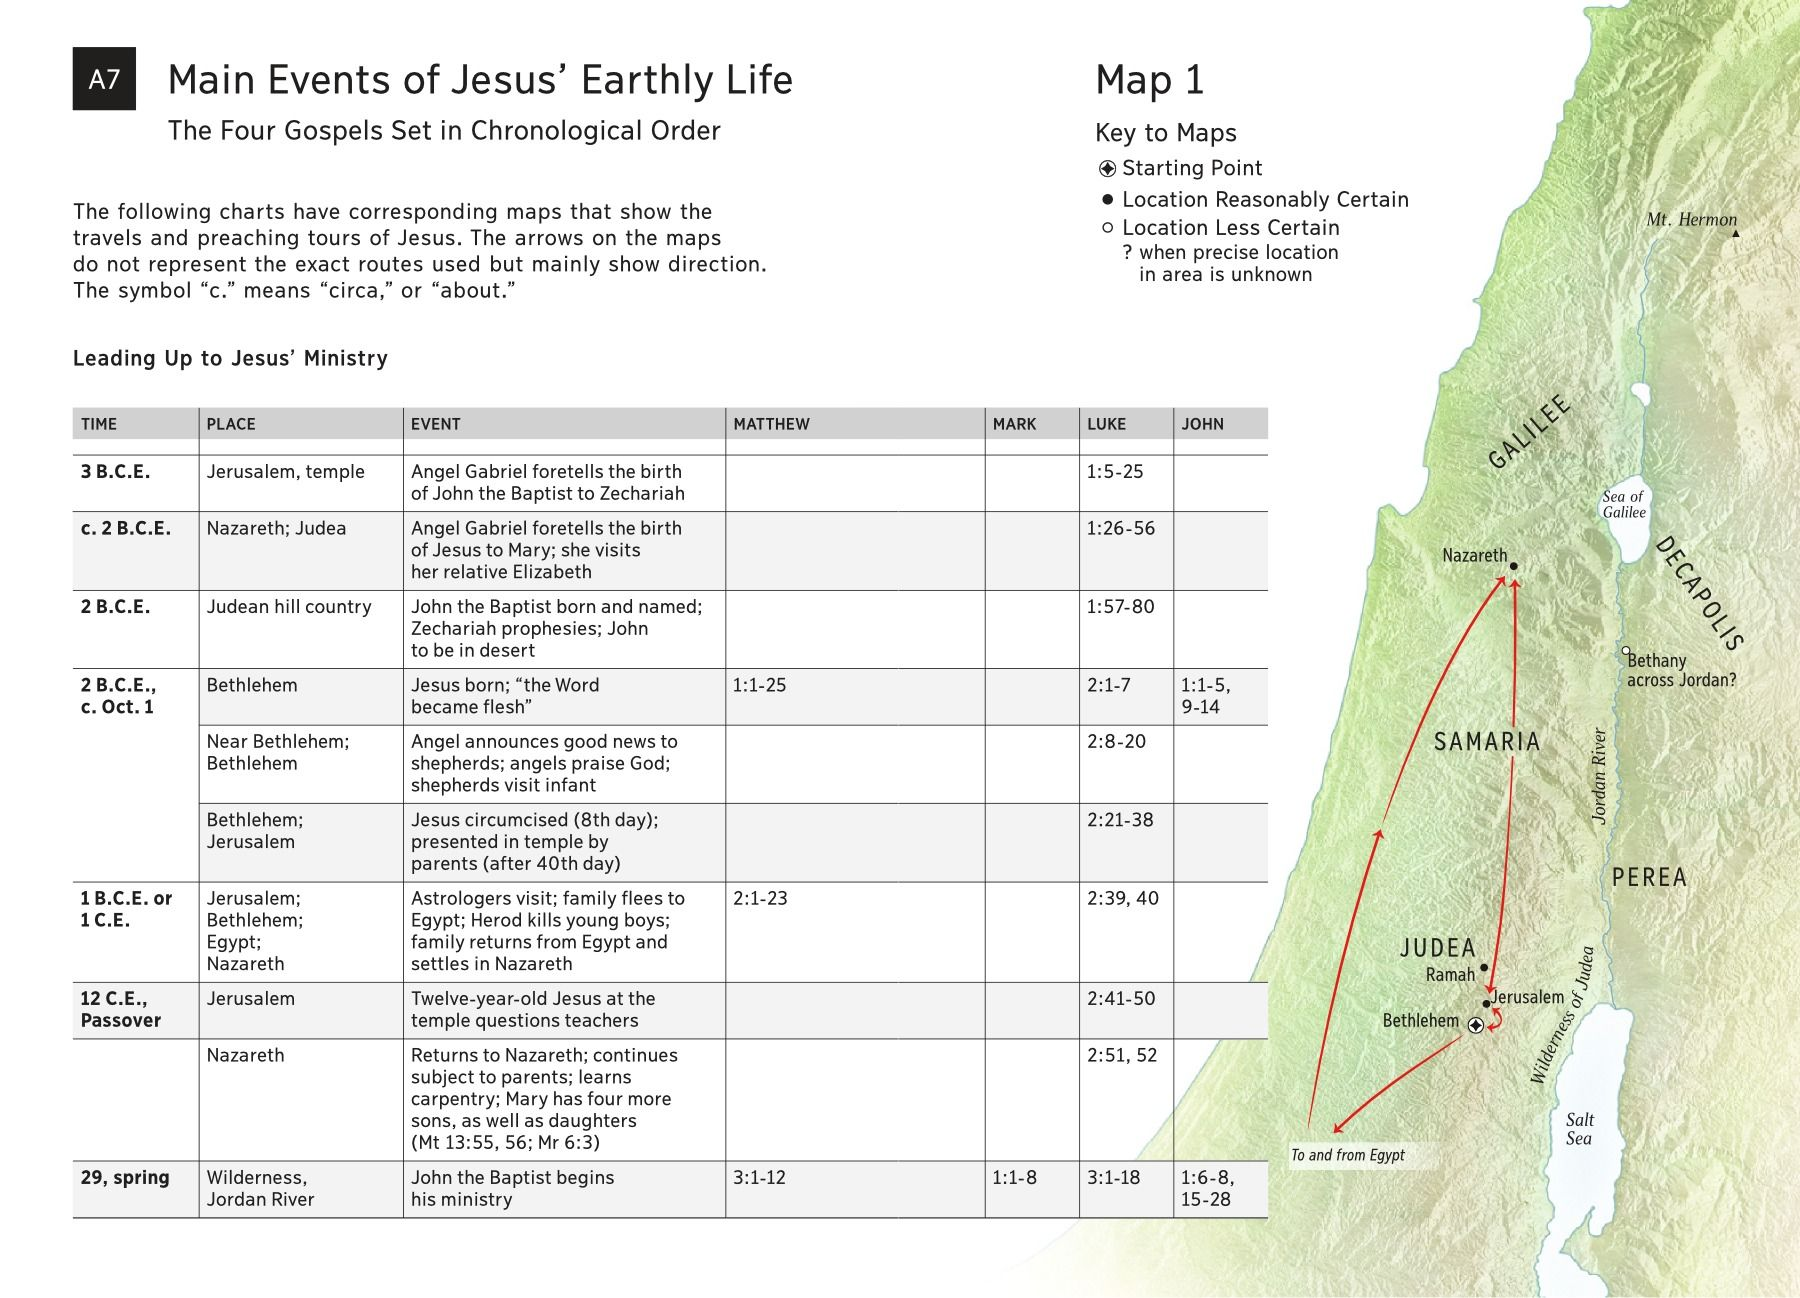 important events in jesus u0027 life on earth chart and map jesus